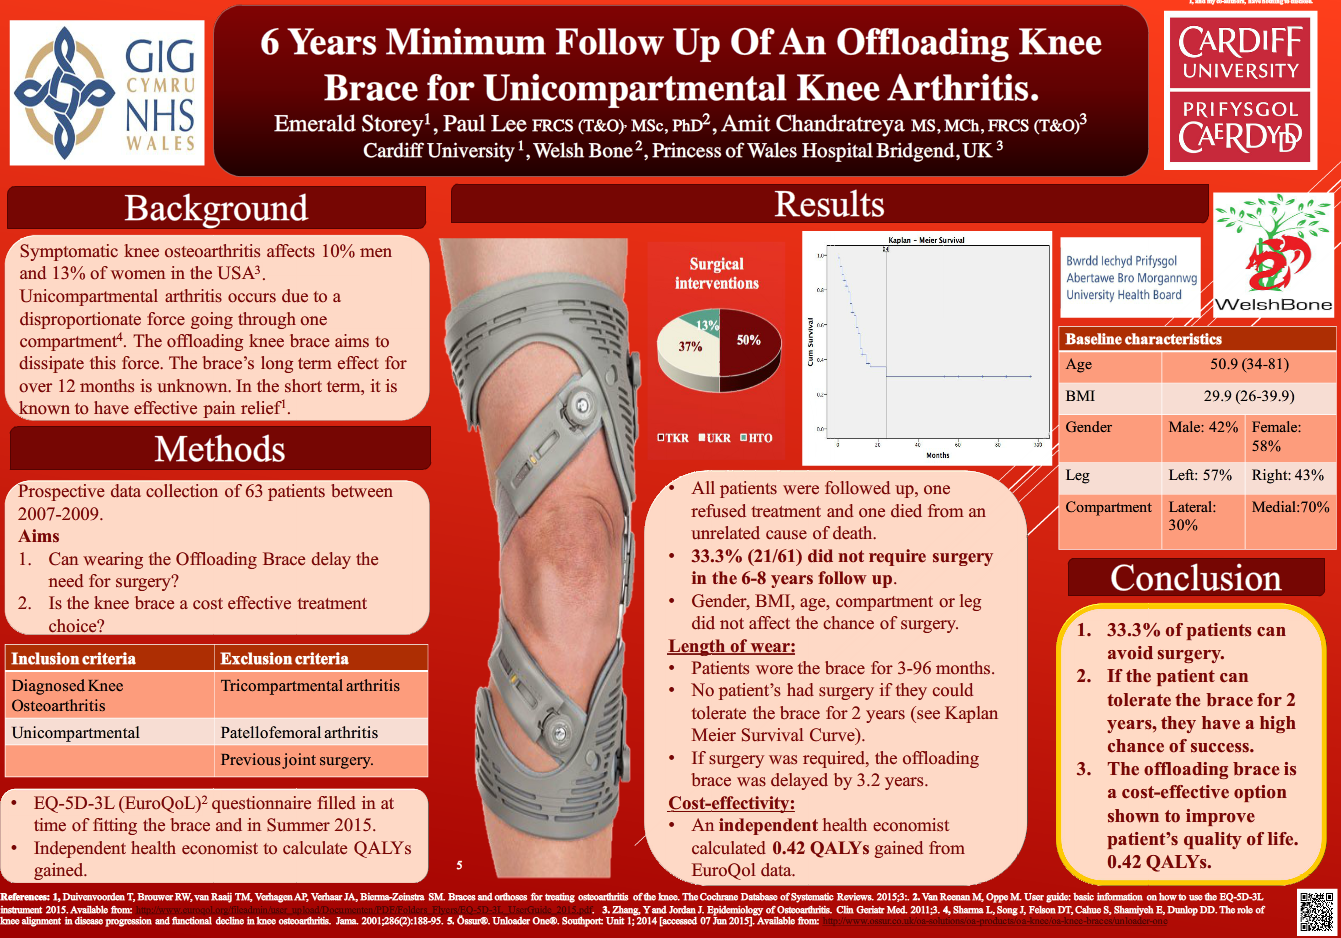 poster-6-years-minimum-follow-up-of-an-offloading-knee-brace-or-unicompartmental-knee-arthritis-002